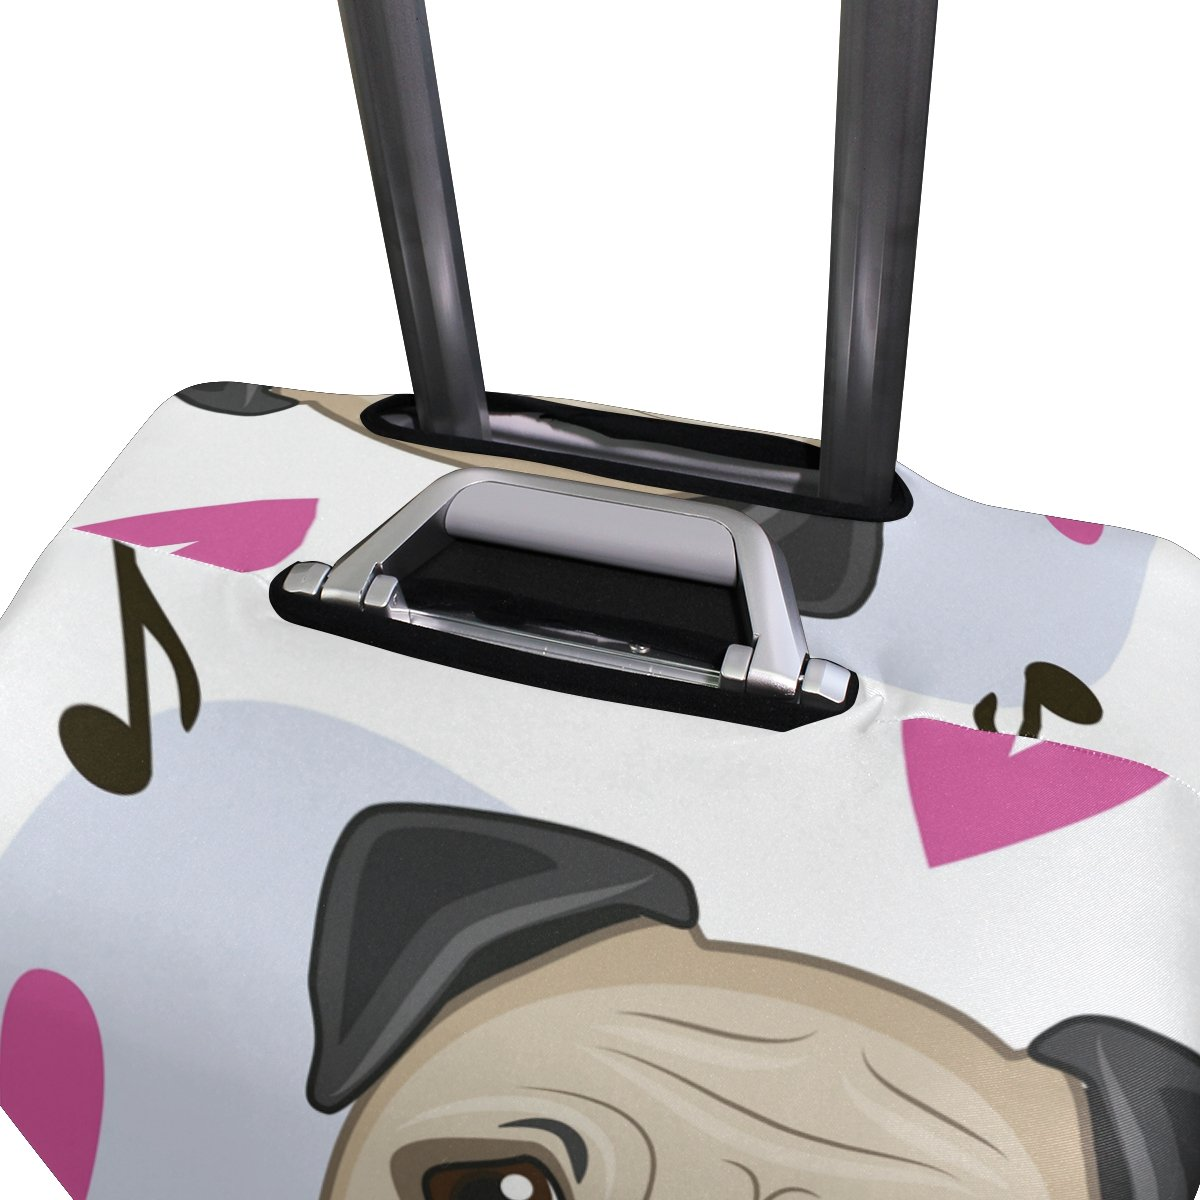 Cute Dog Puppy Music Hearts Love Suitcase Luggage Cover Protector for Travel Kids Men Women by ALAZA (Image #4)